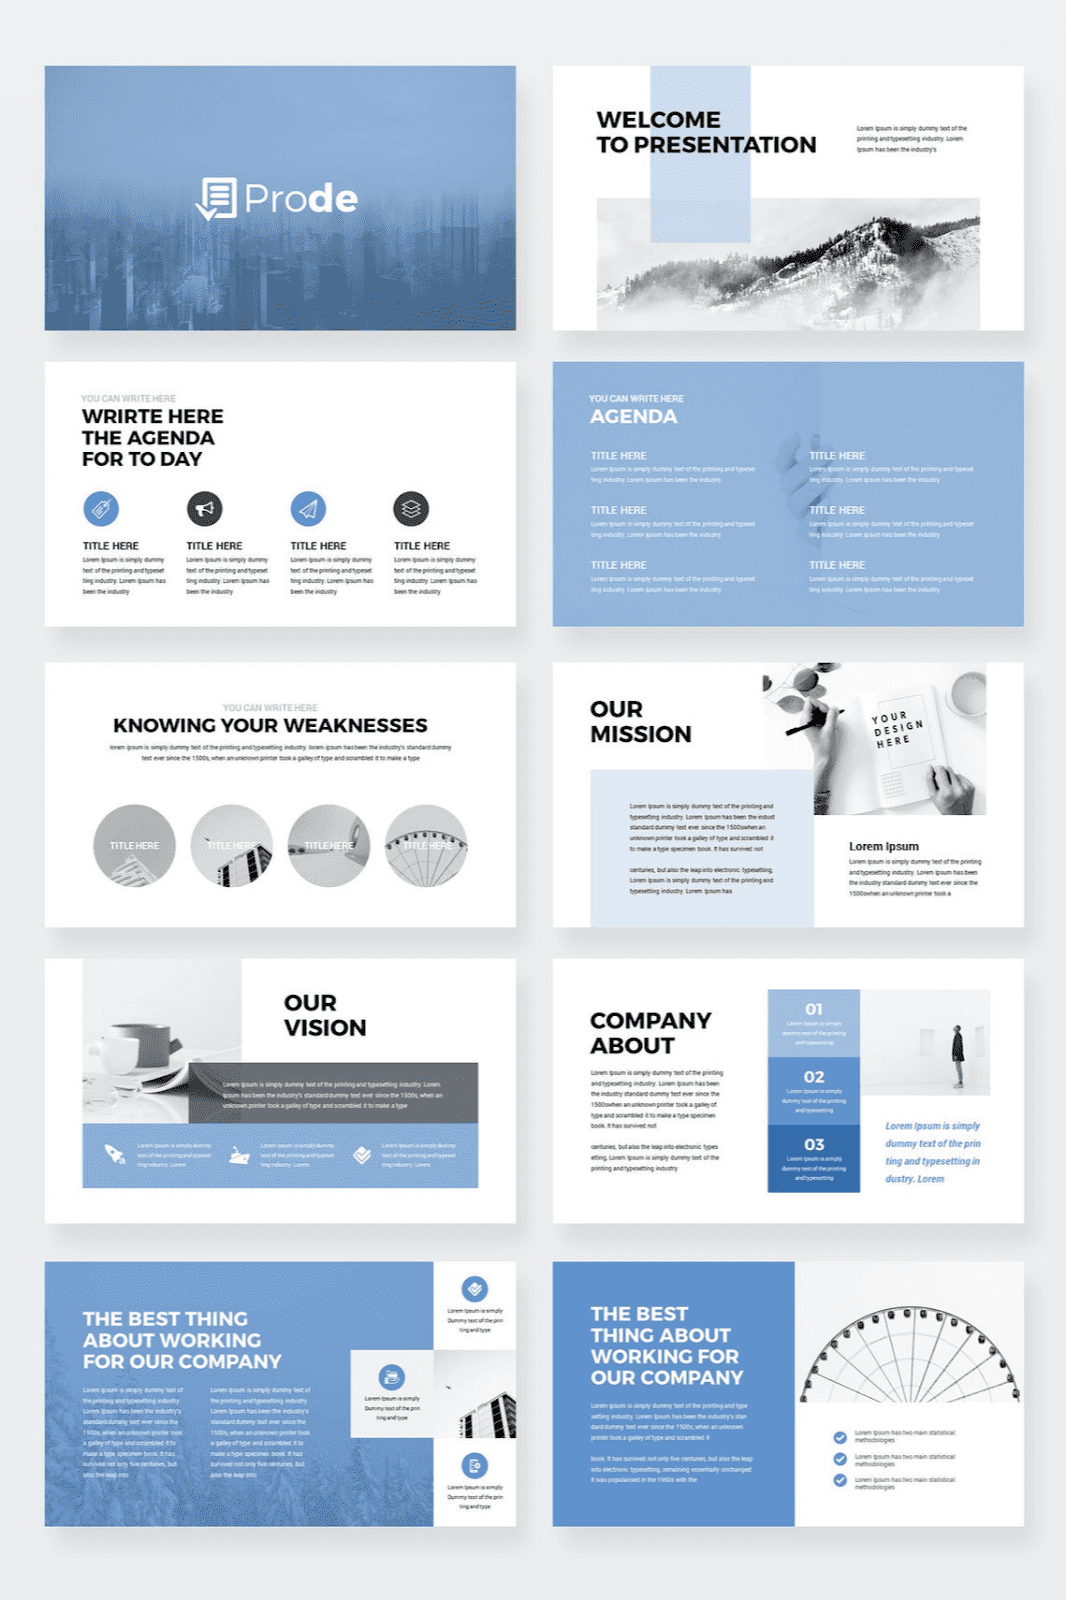 Prode PowerPoint template